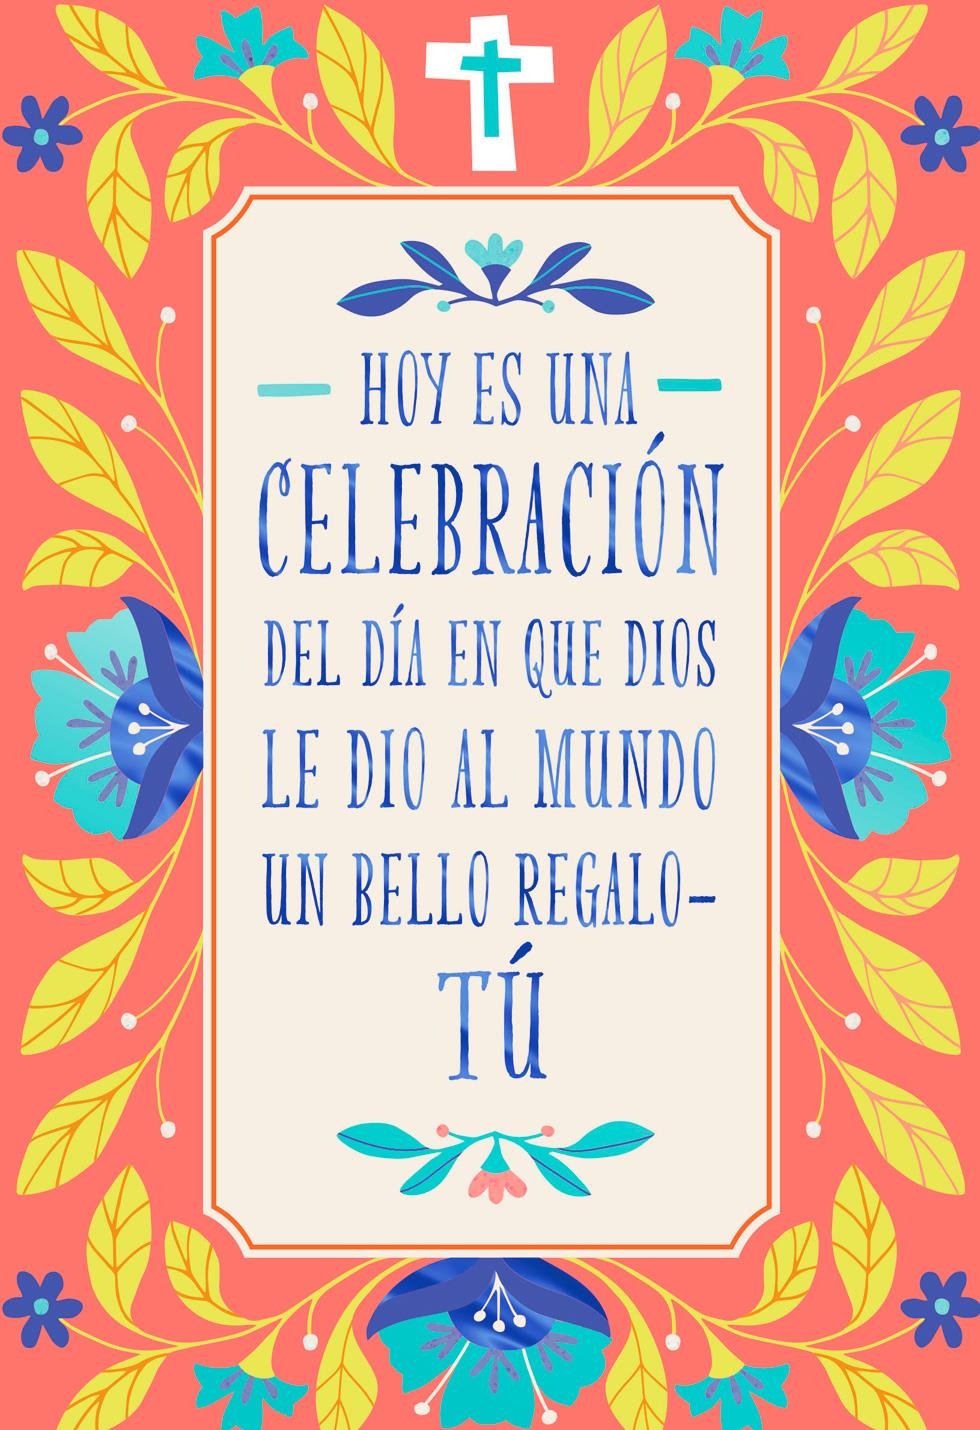 A Wonderful Woman Spanish Language Religious Birthday Card